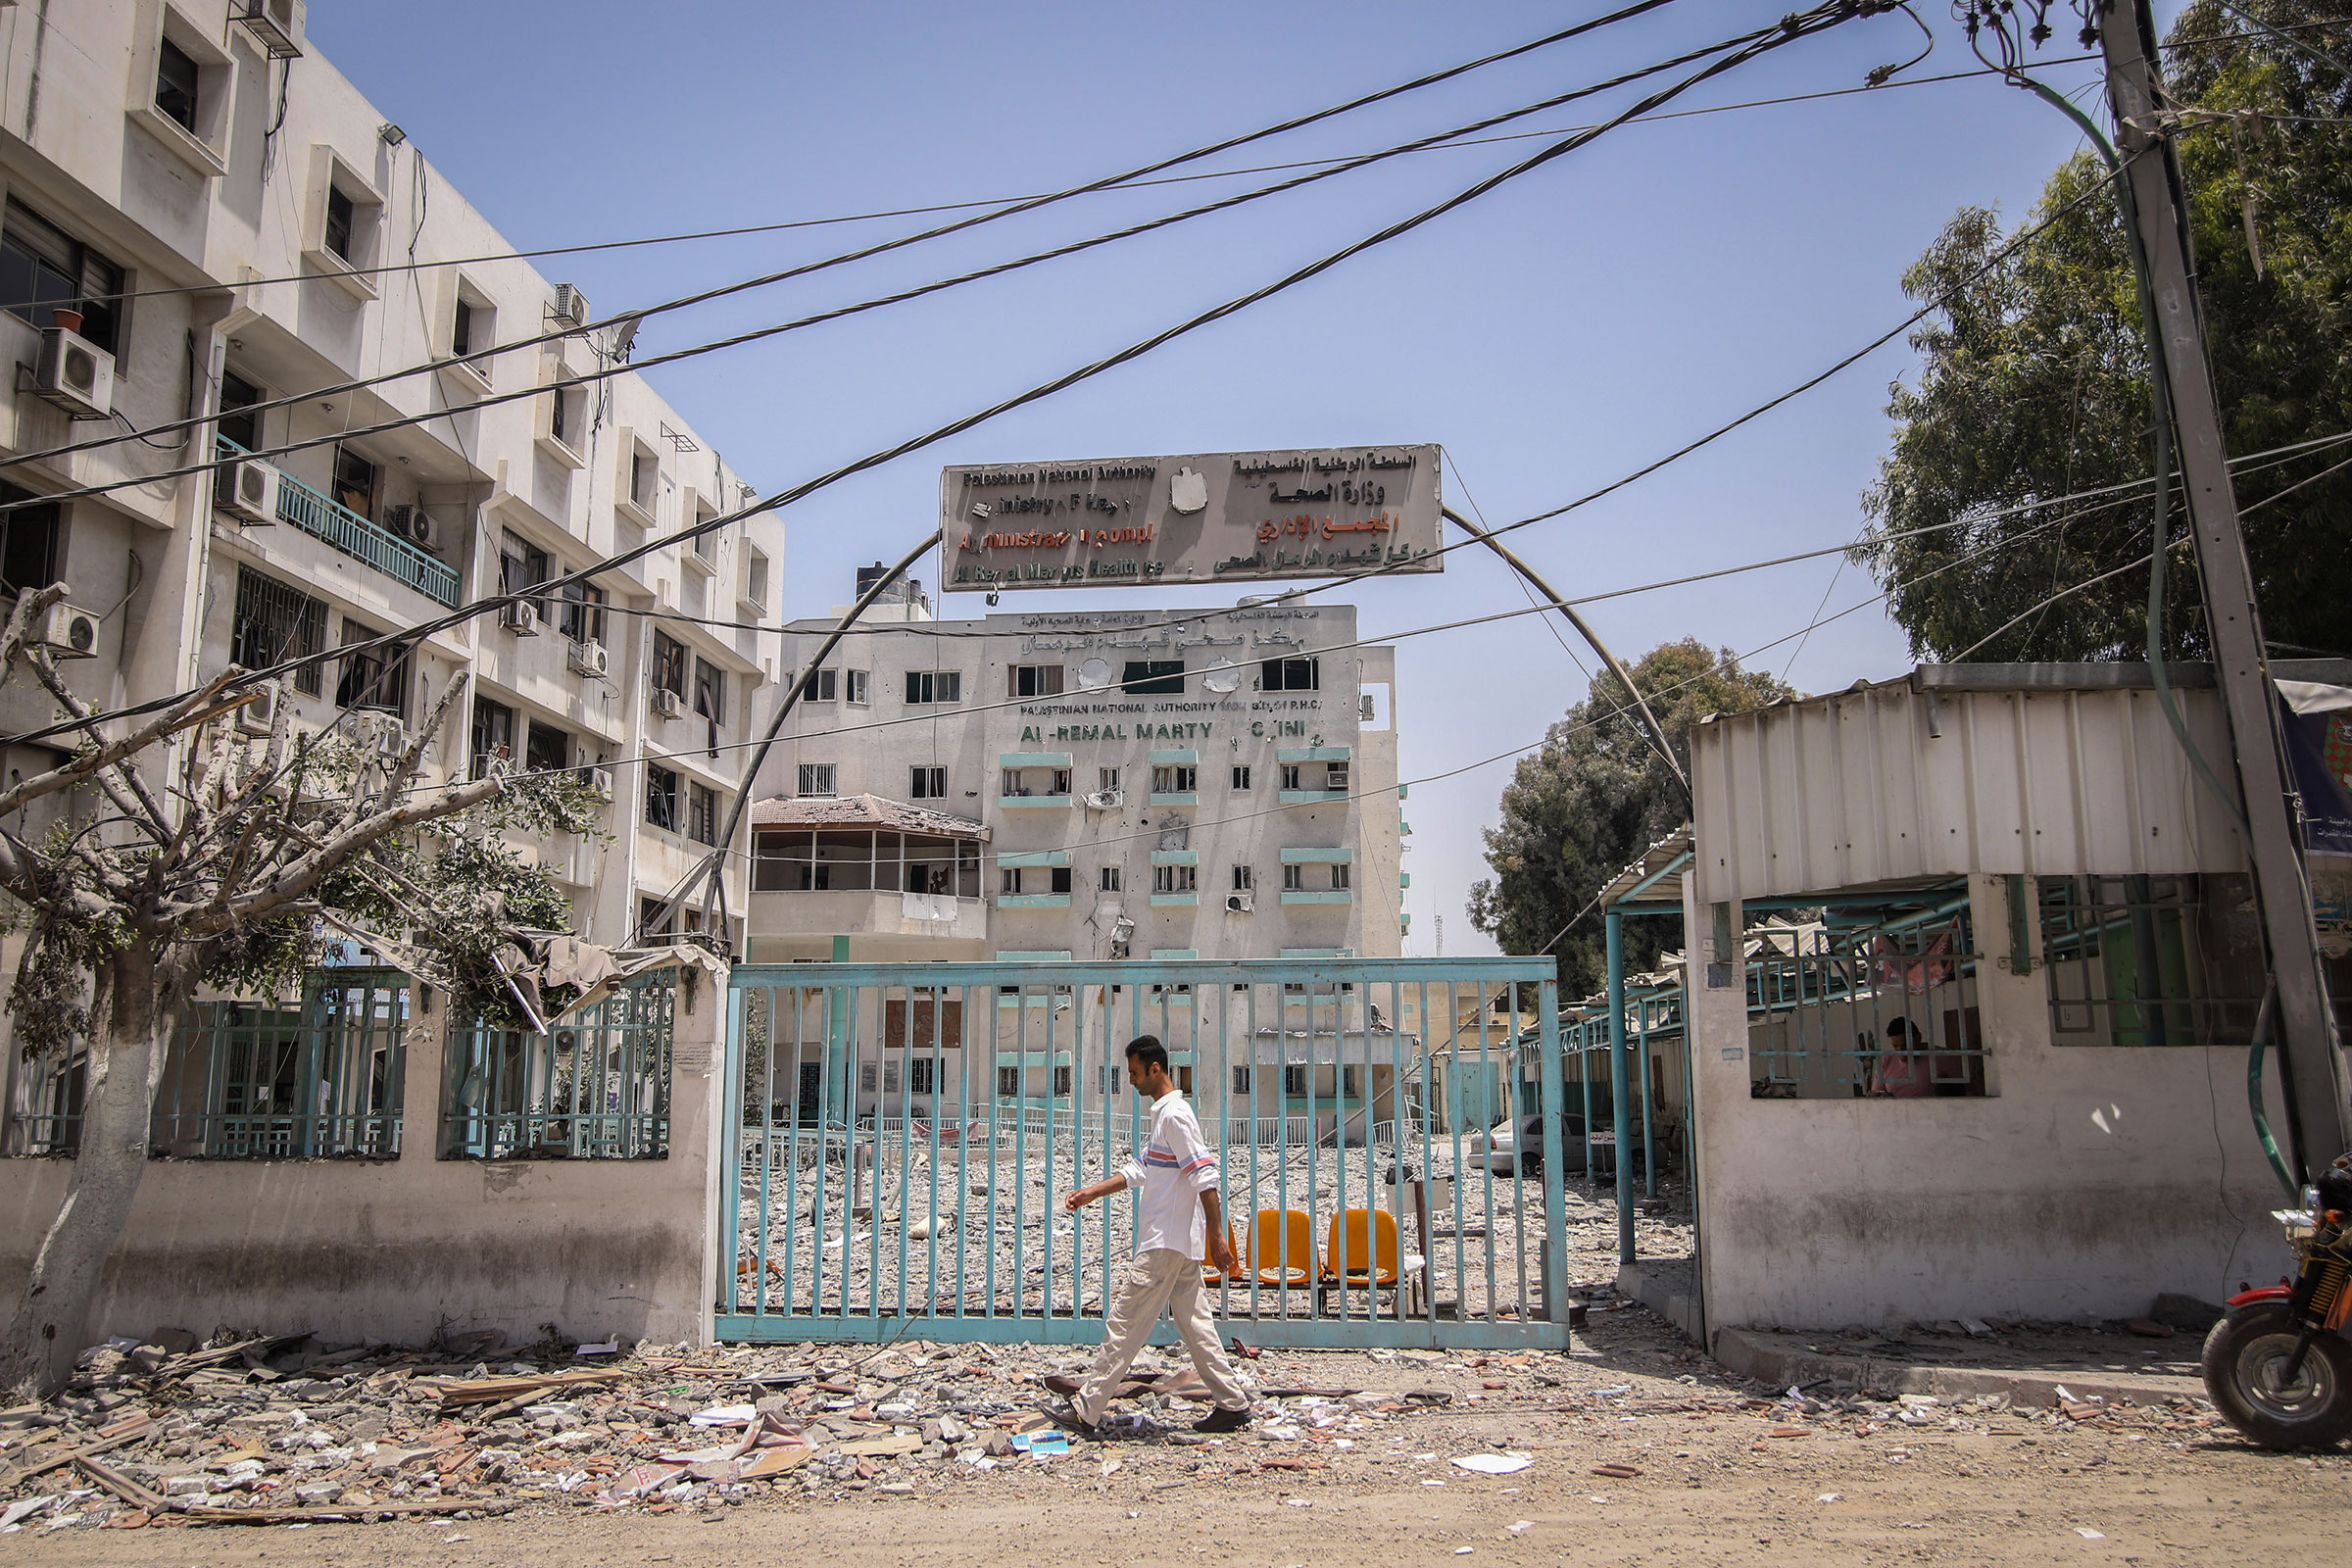 A pedestrian passes in front of the Al-Remal Clinic, Gaza's sole Covid-19 testing laboratory, damaged following Israeli airstrikes, in Gaza City, Gaza, on May 21, 2021.